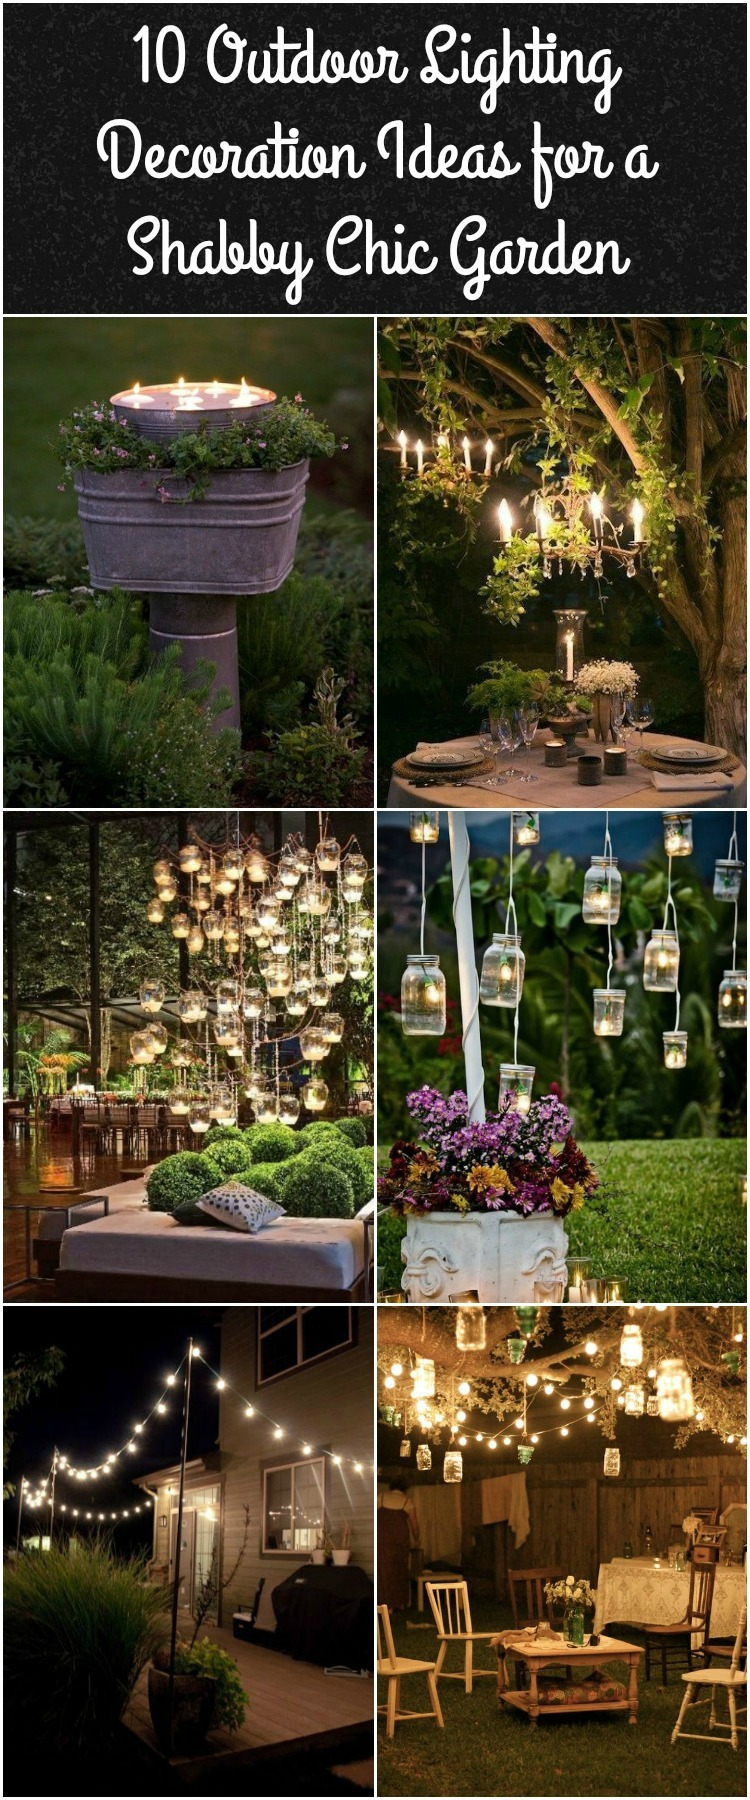 chic garden lighting ideas | 20 Outdoor Lighting Ideas for a Shabby Chic Garden #6 is ...